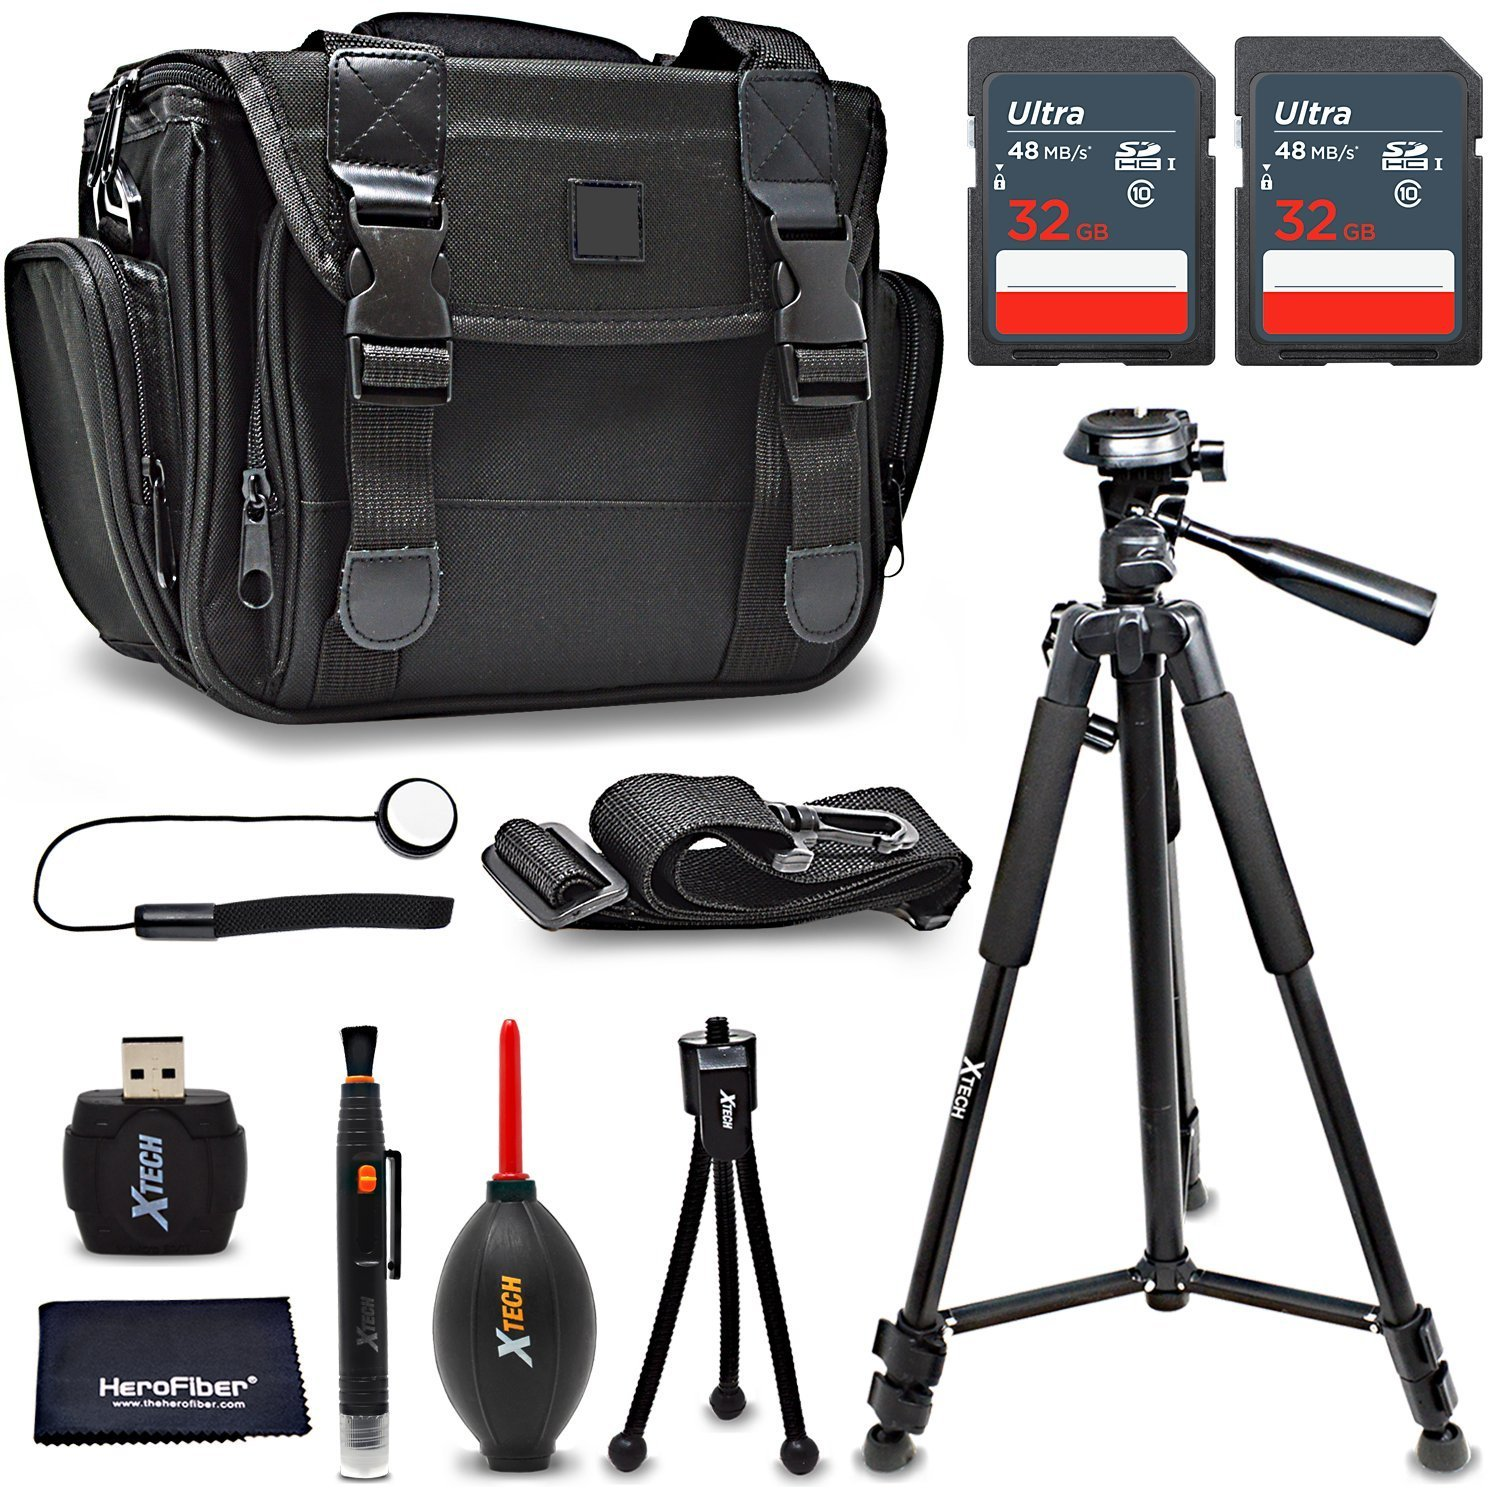 Deluxe Accessories Bundle / Kit for Fujifilm X-T2, X-PRO2, GFX 50S, X100F, X-T1 IR, X-T1, X-T20, X-T10, X-E2S, X-A3, X70, X-A10, X-A2, XQ2 - includes 64GB Memory, Deluxe Camera Case, Tripod + More